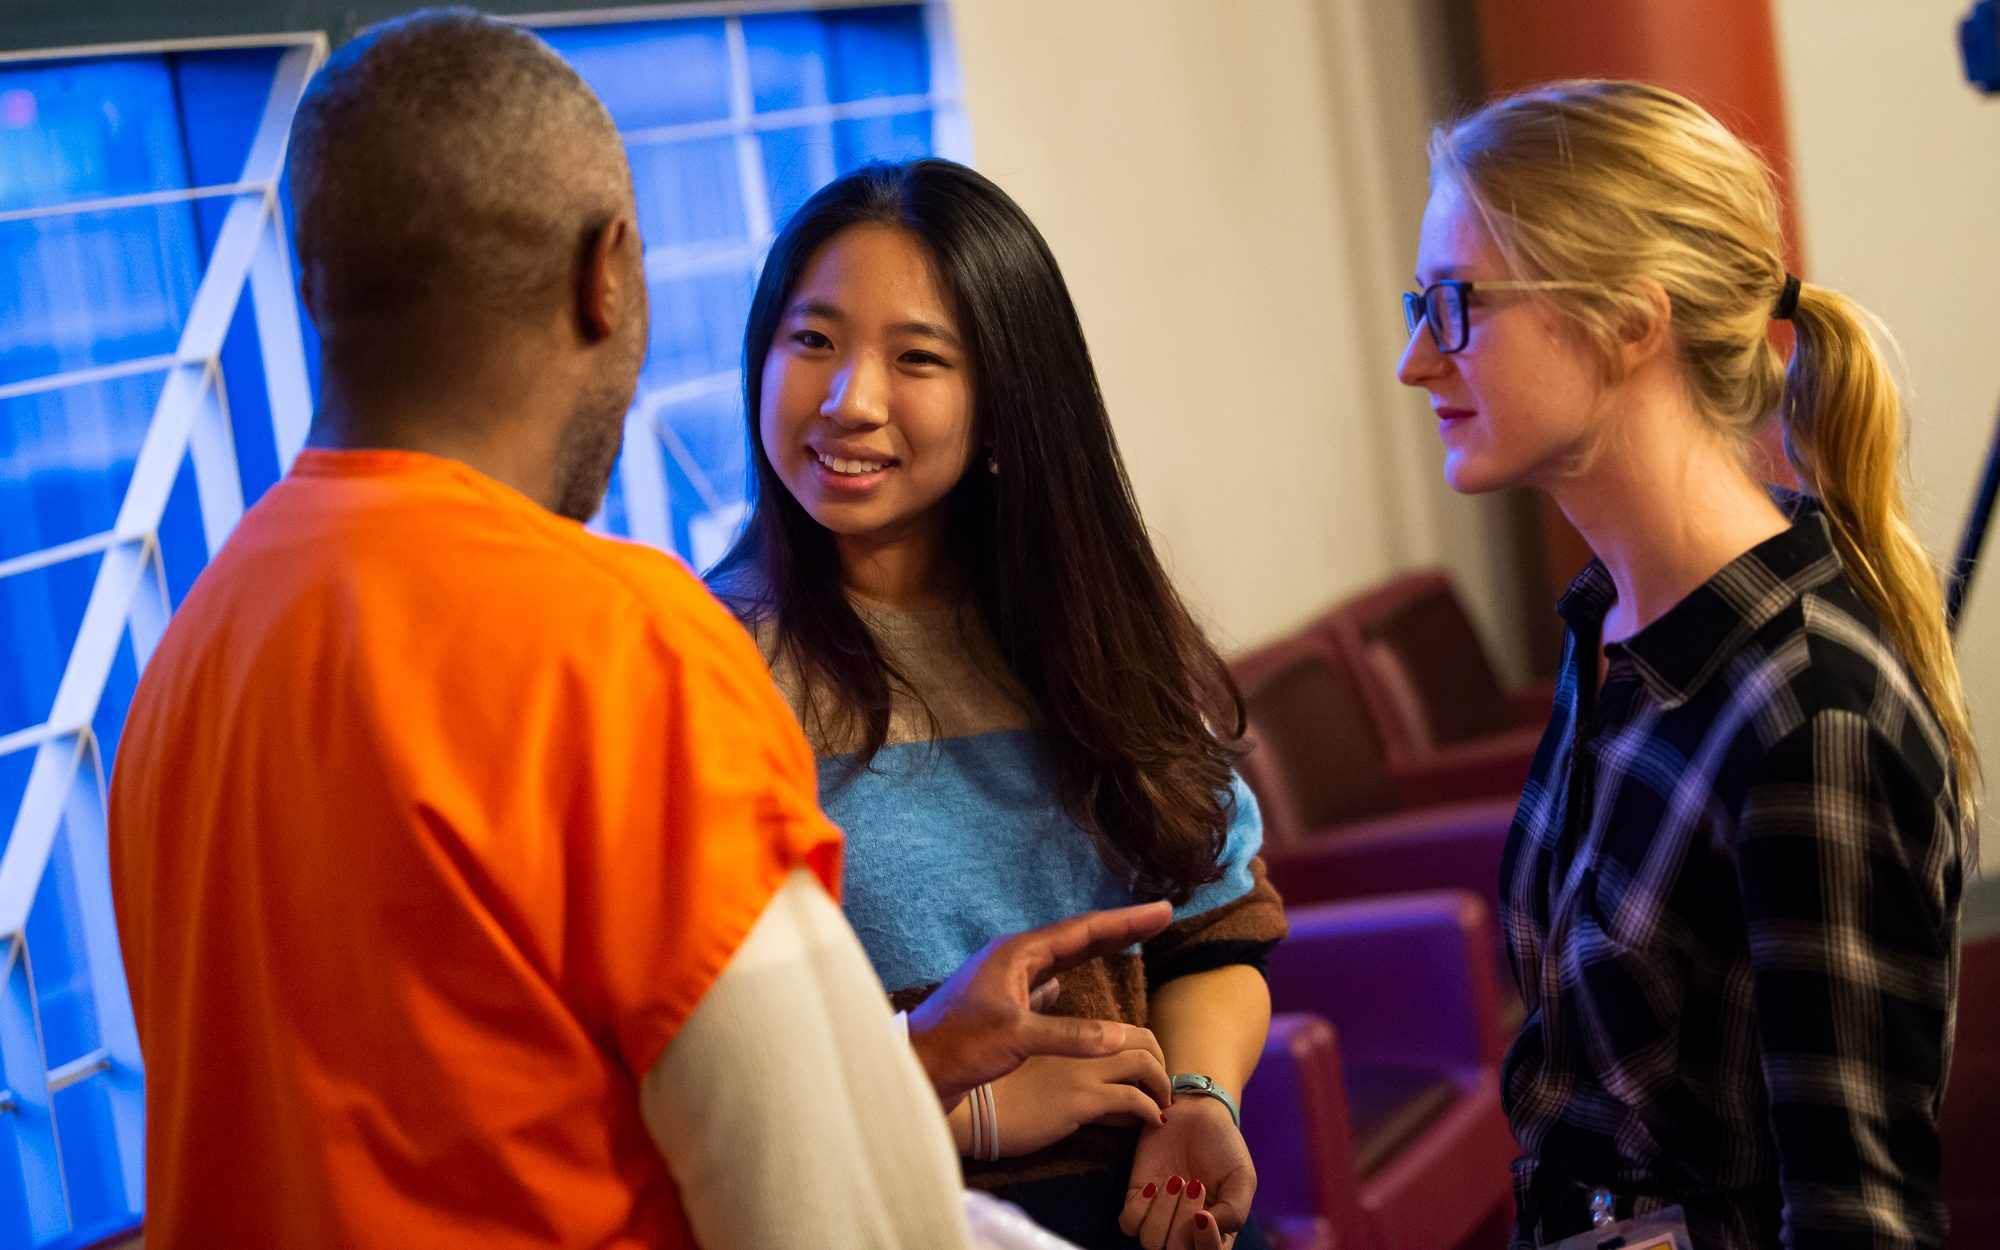 Two young women speak with an incarcerated man.